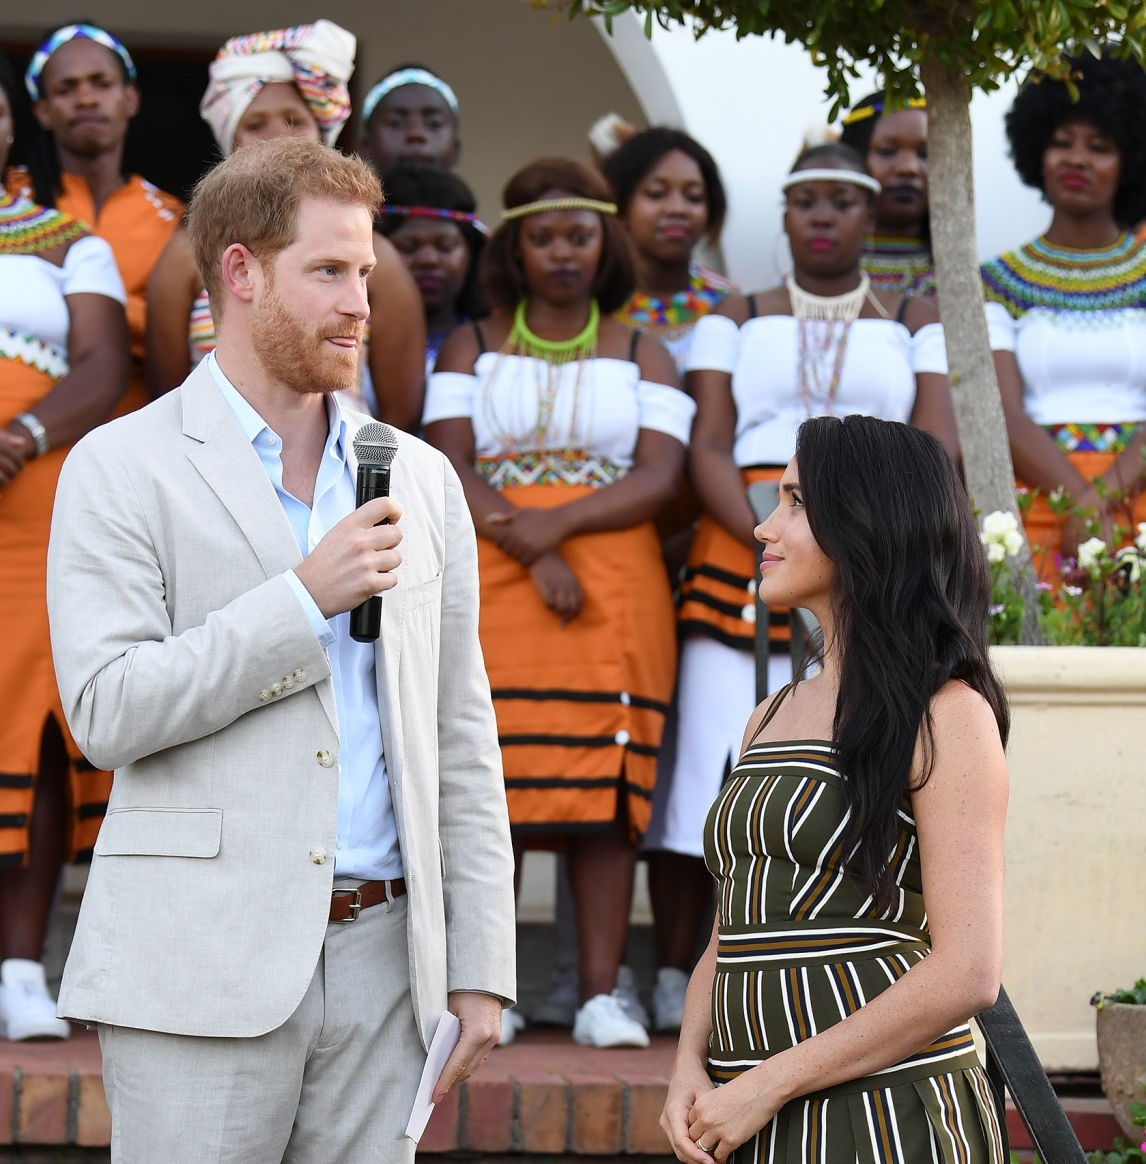 Meghan Markel and Prince Harry rebuke violence against women in South Africa